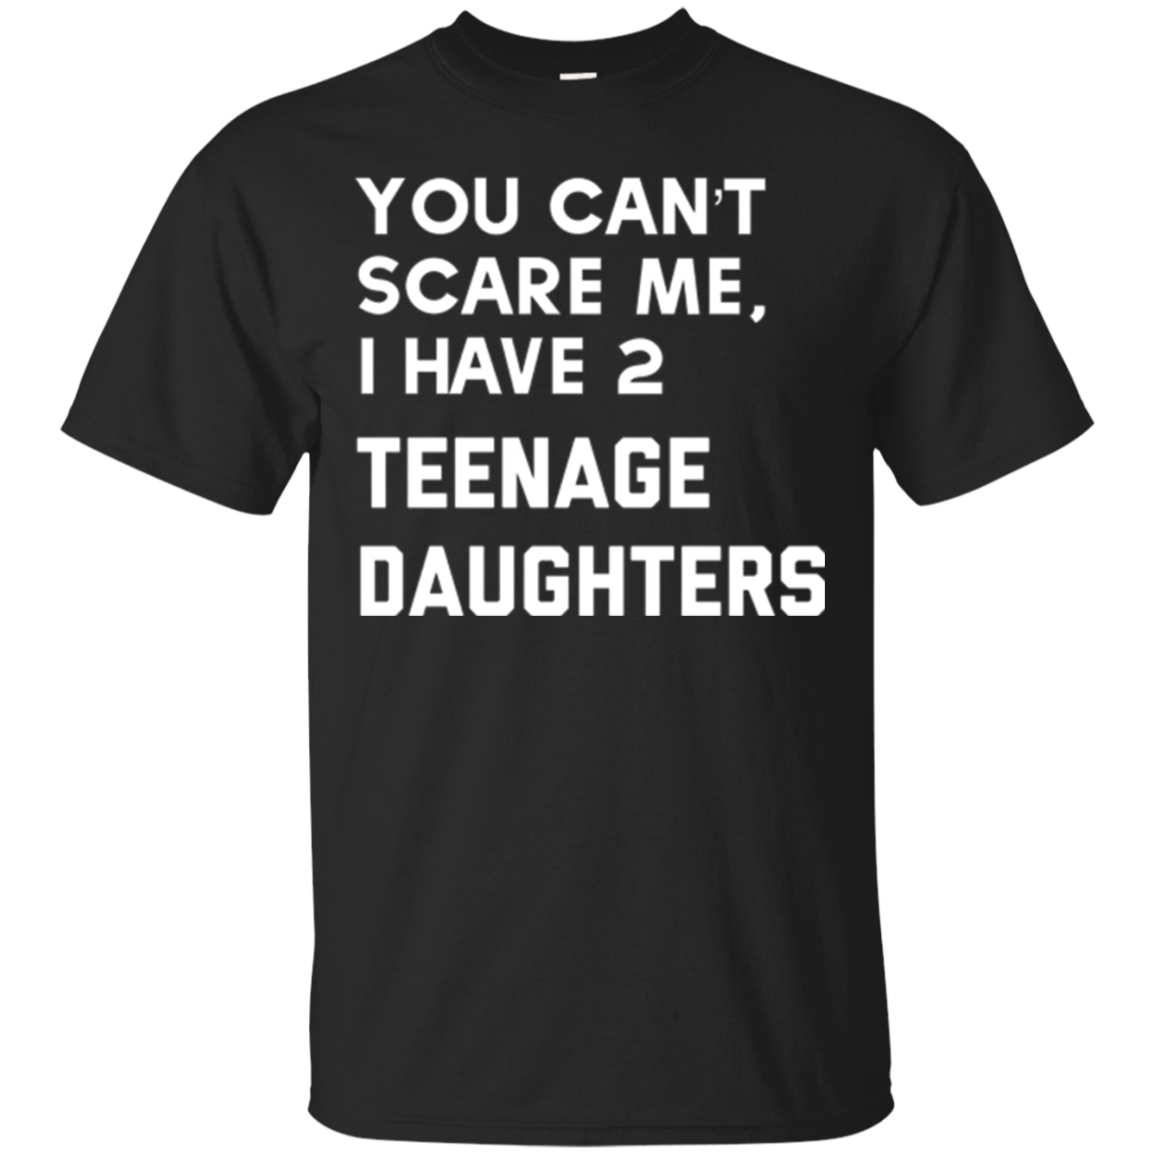 You Cant Scare Me, I Have Two Teenage Daughters tShirt